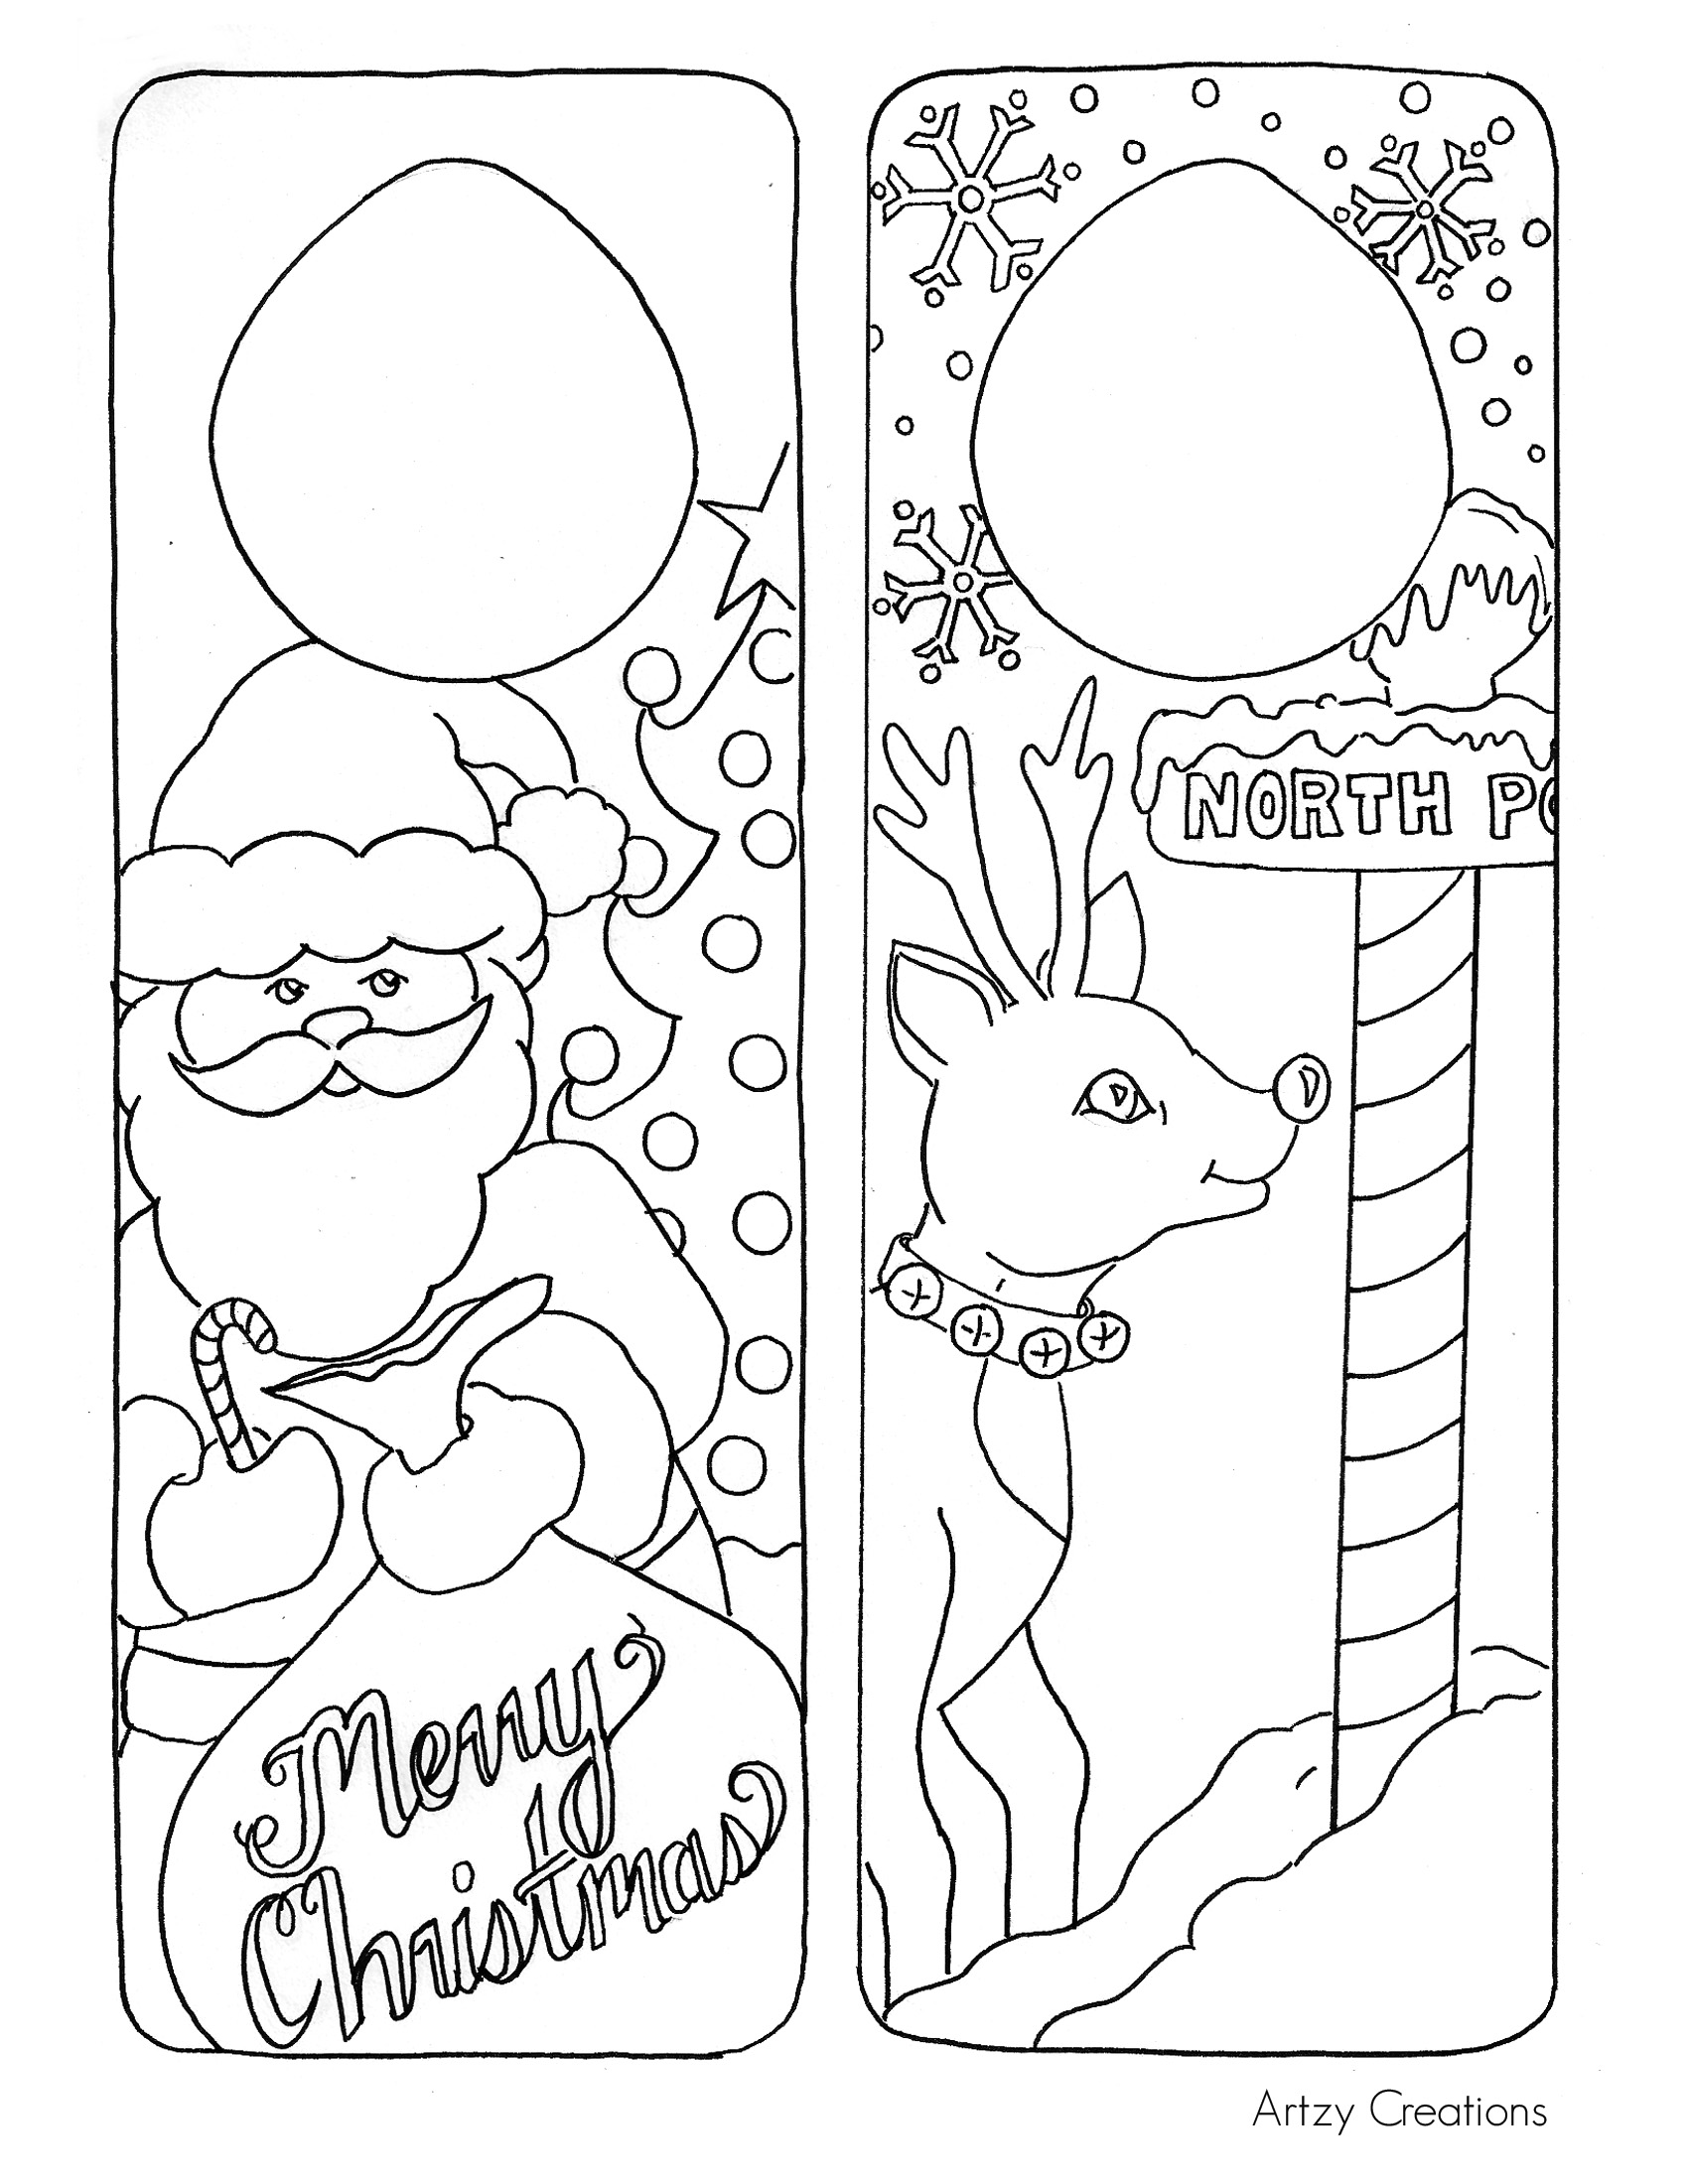 Christmas Colouring Pages And Activities With Coloring Page Door Hanger Printables The 36th AVENUE